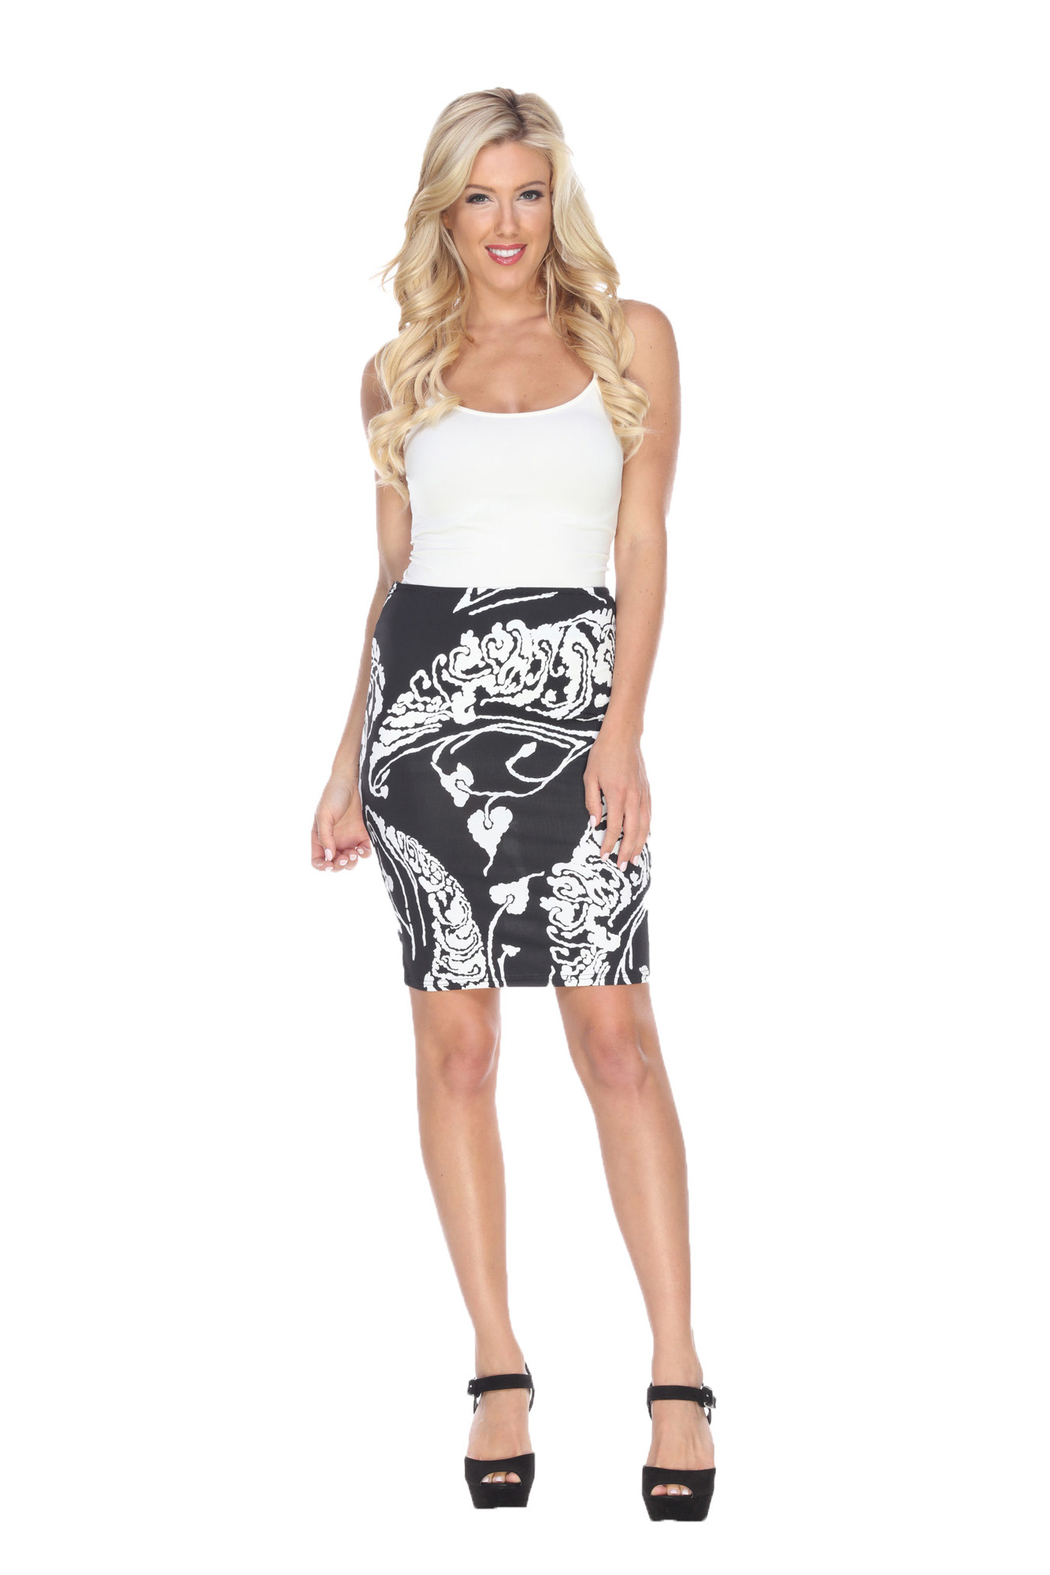 WhiteMark White Mark's Printed Pencil Skirt - Front Cropped Image